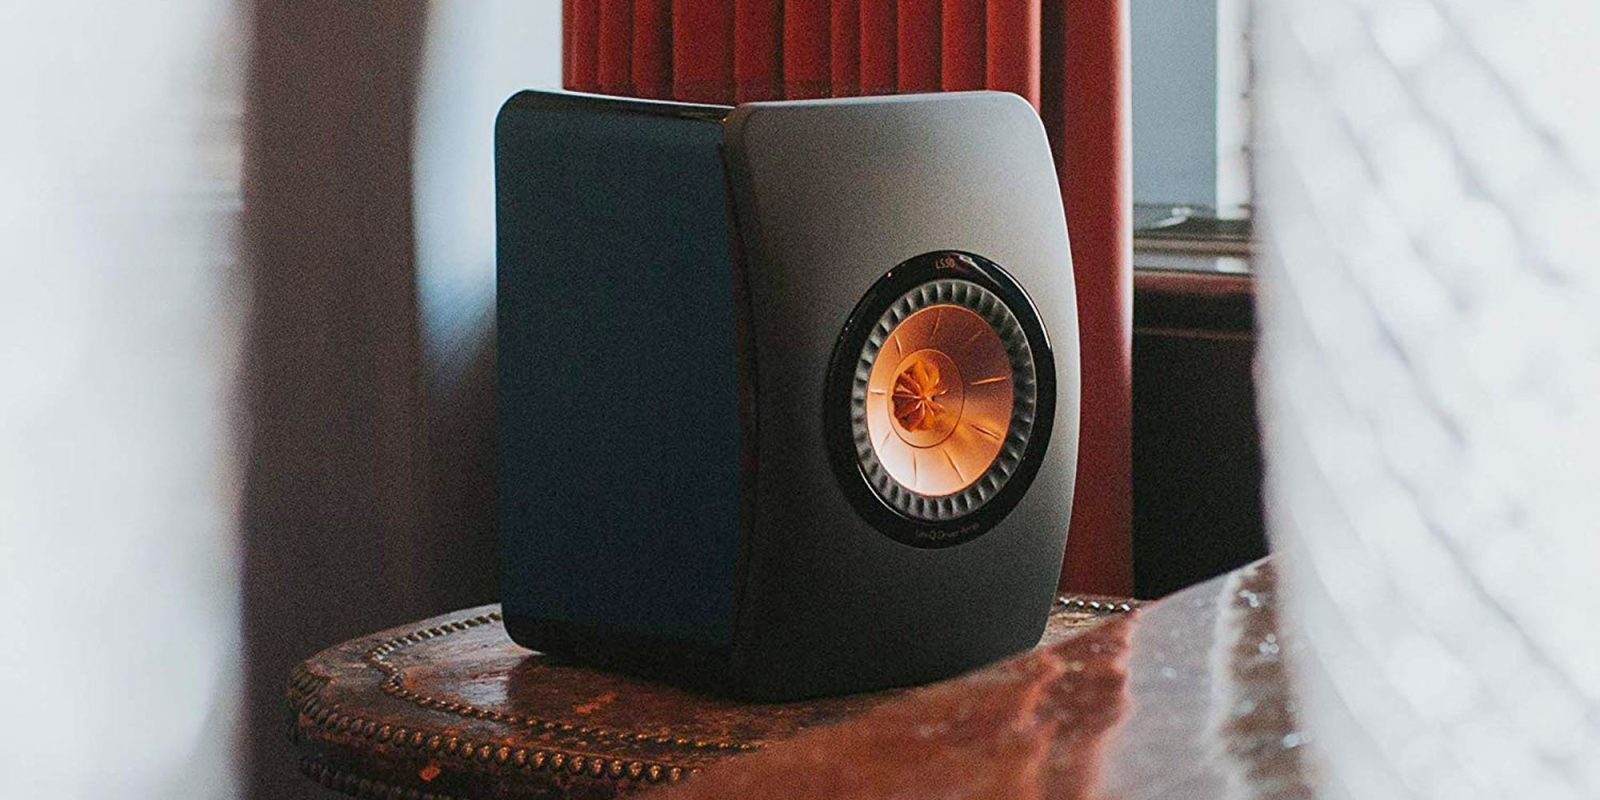 Your audio setup deserves KEF's LS50 monitor pair: $900 (30% off, Amazon low)